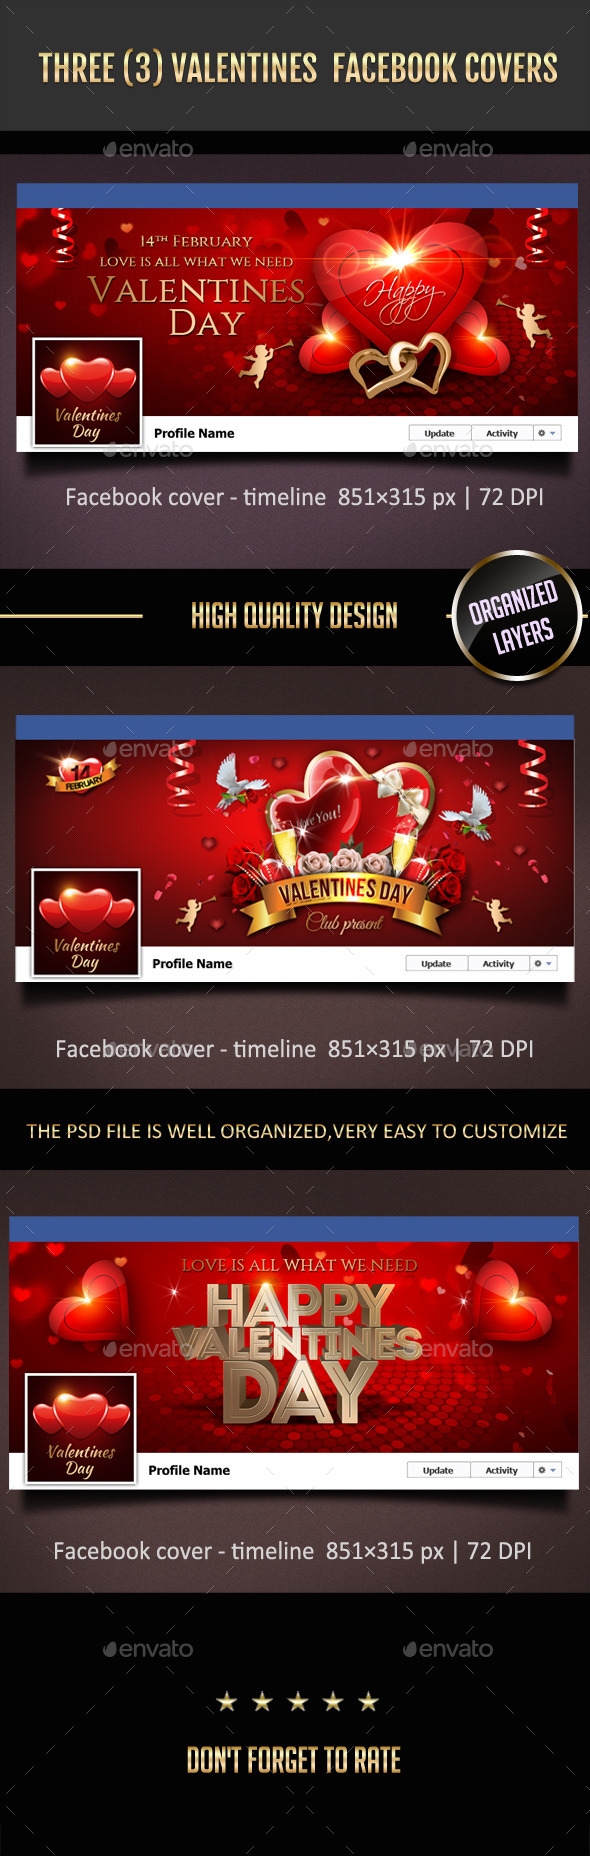 3 Valentines Day Facebook Covers